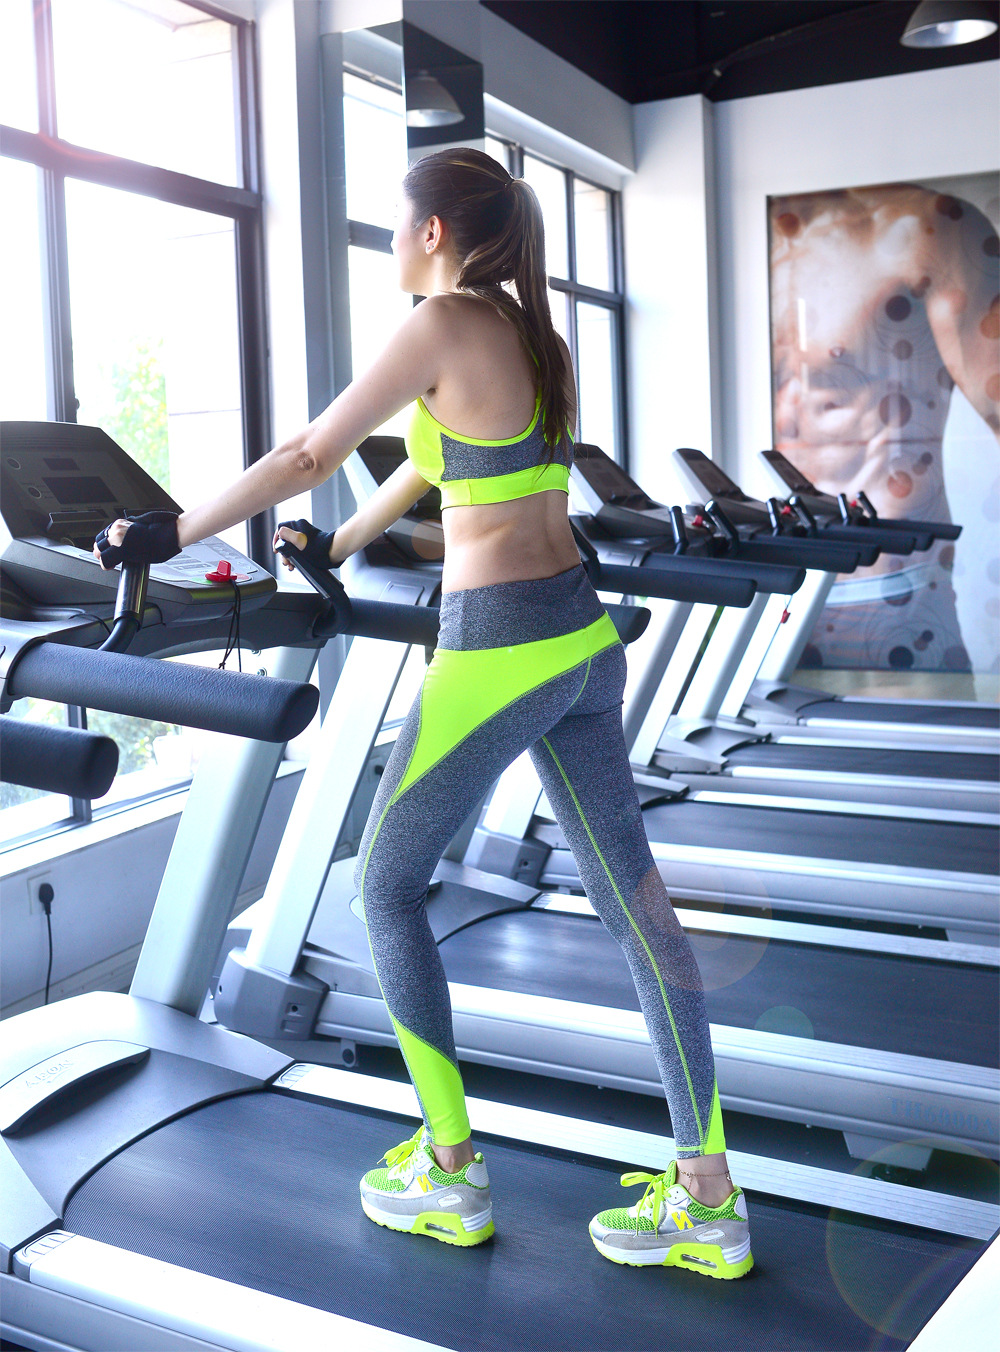 Women s yoga sets sport suit workout clothes female fitness sports - Aliexpress Com Buy 2017 Women Yogaing Sets Bra Pants Fitness Workout Clothing And Women S Gymming Runs Slim Leggings Tops Sporting Suit For Female From